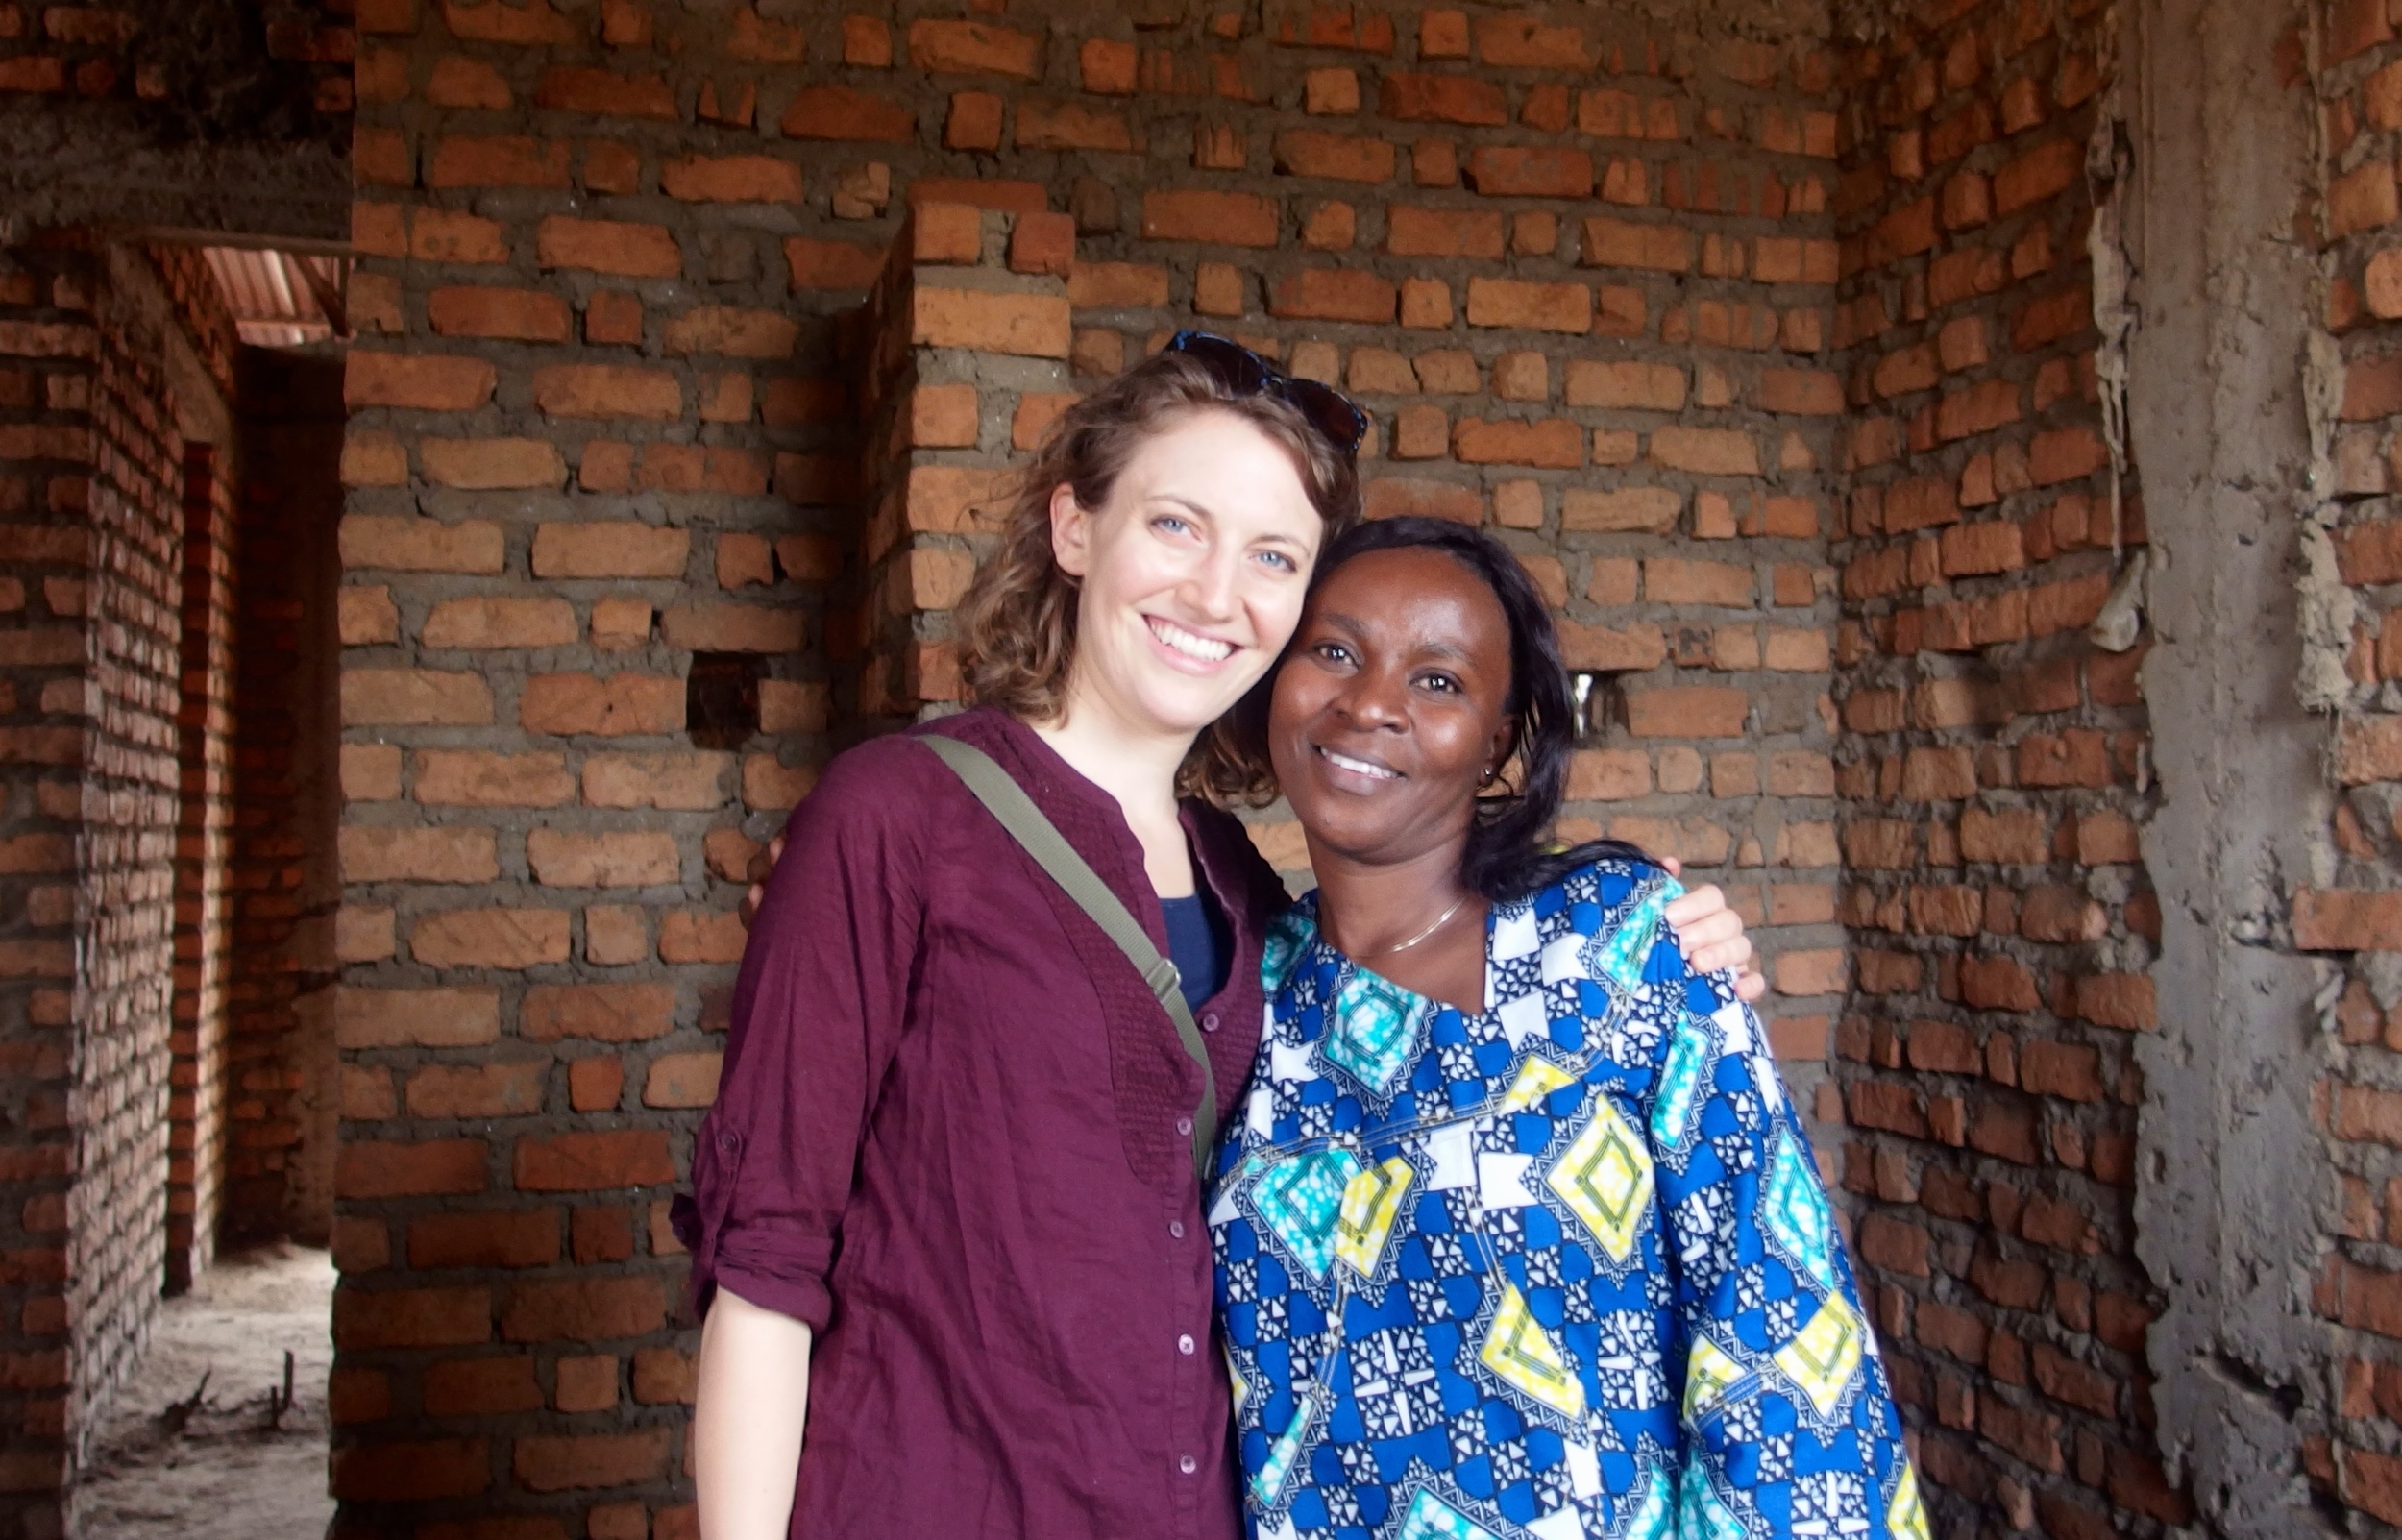 Mwendo Congo representative, Amy, with Interim Secretary General of Let Africa Live during site visit in August 2015. They stand together in one of ten unfinished rooms. With your support, this room will house two students and their children.